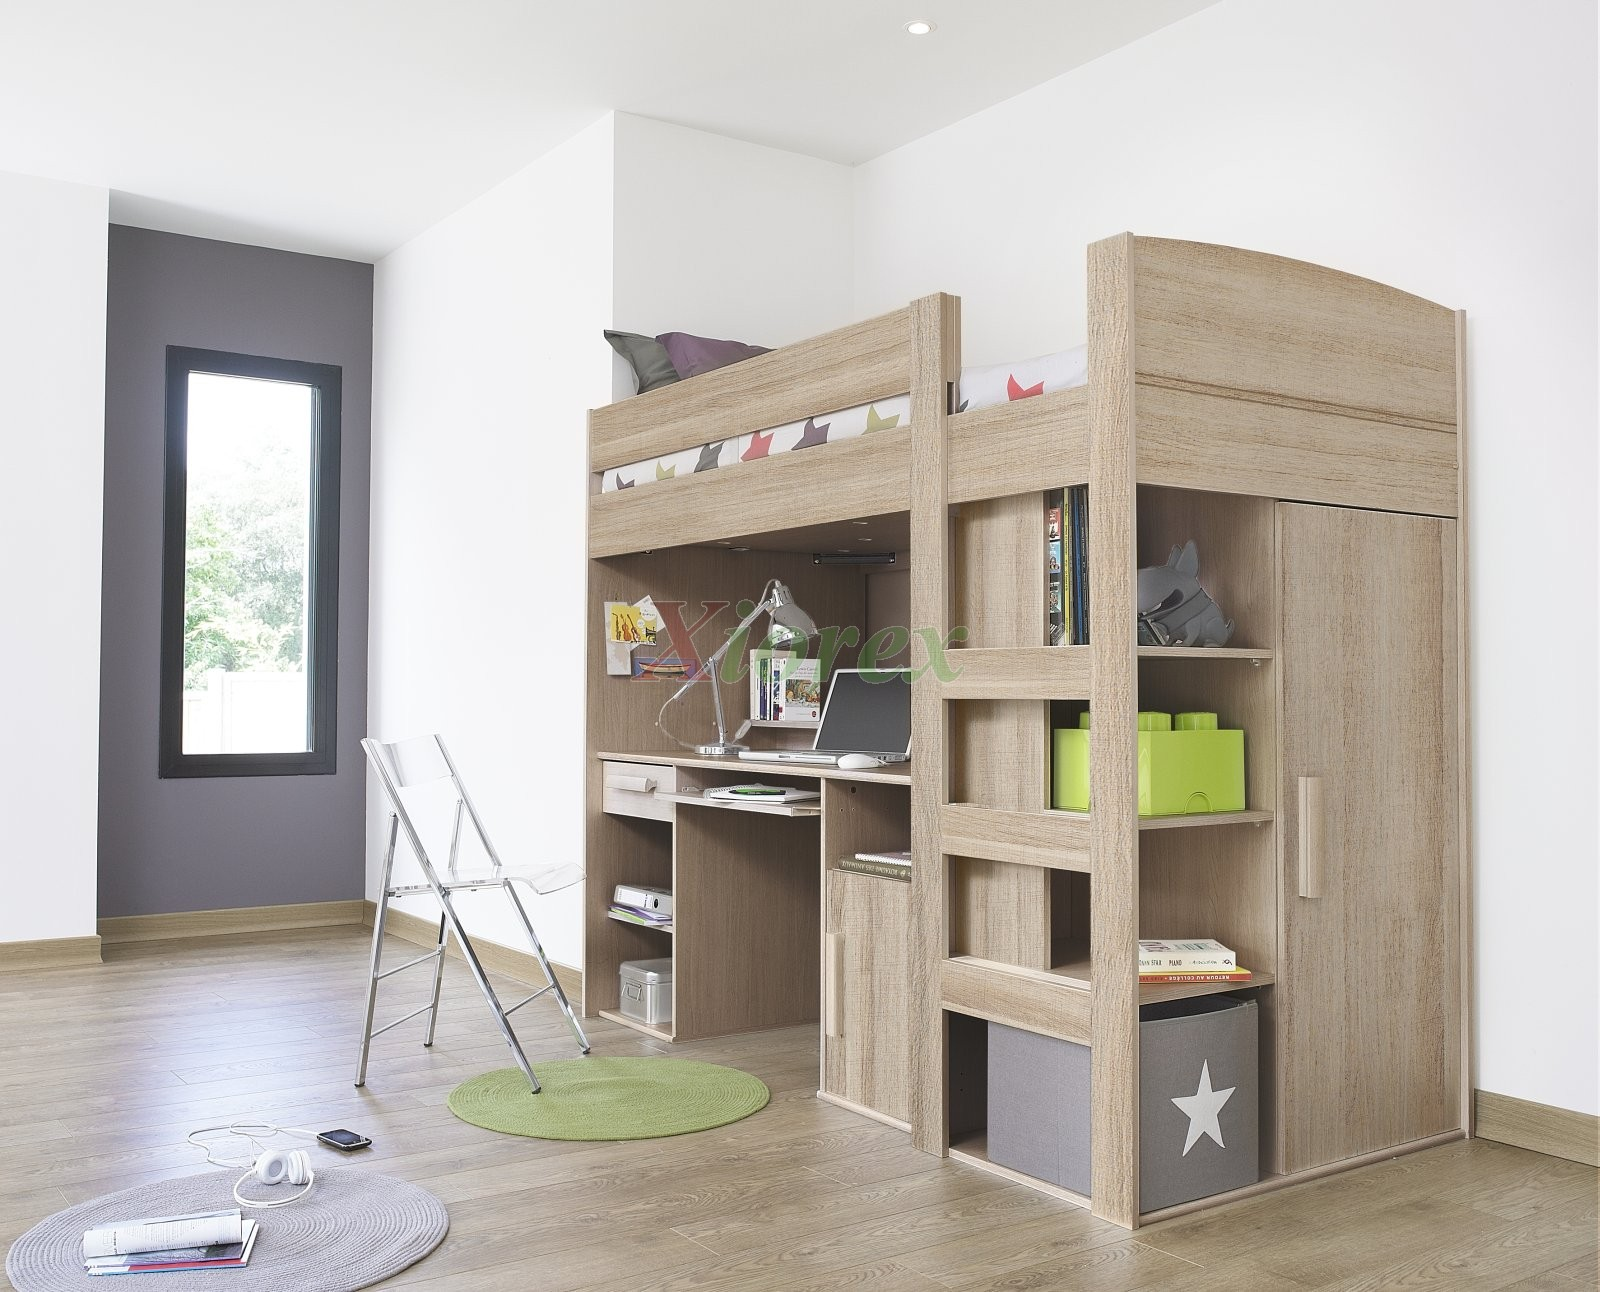 Gami Montana Loft Beds With Desk Closet And Storage Underneath | Xiorex ...